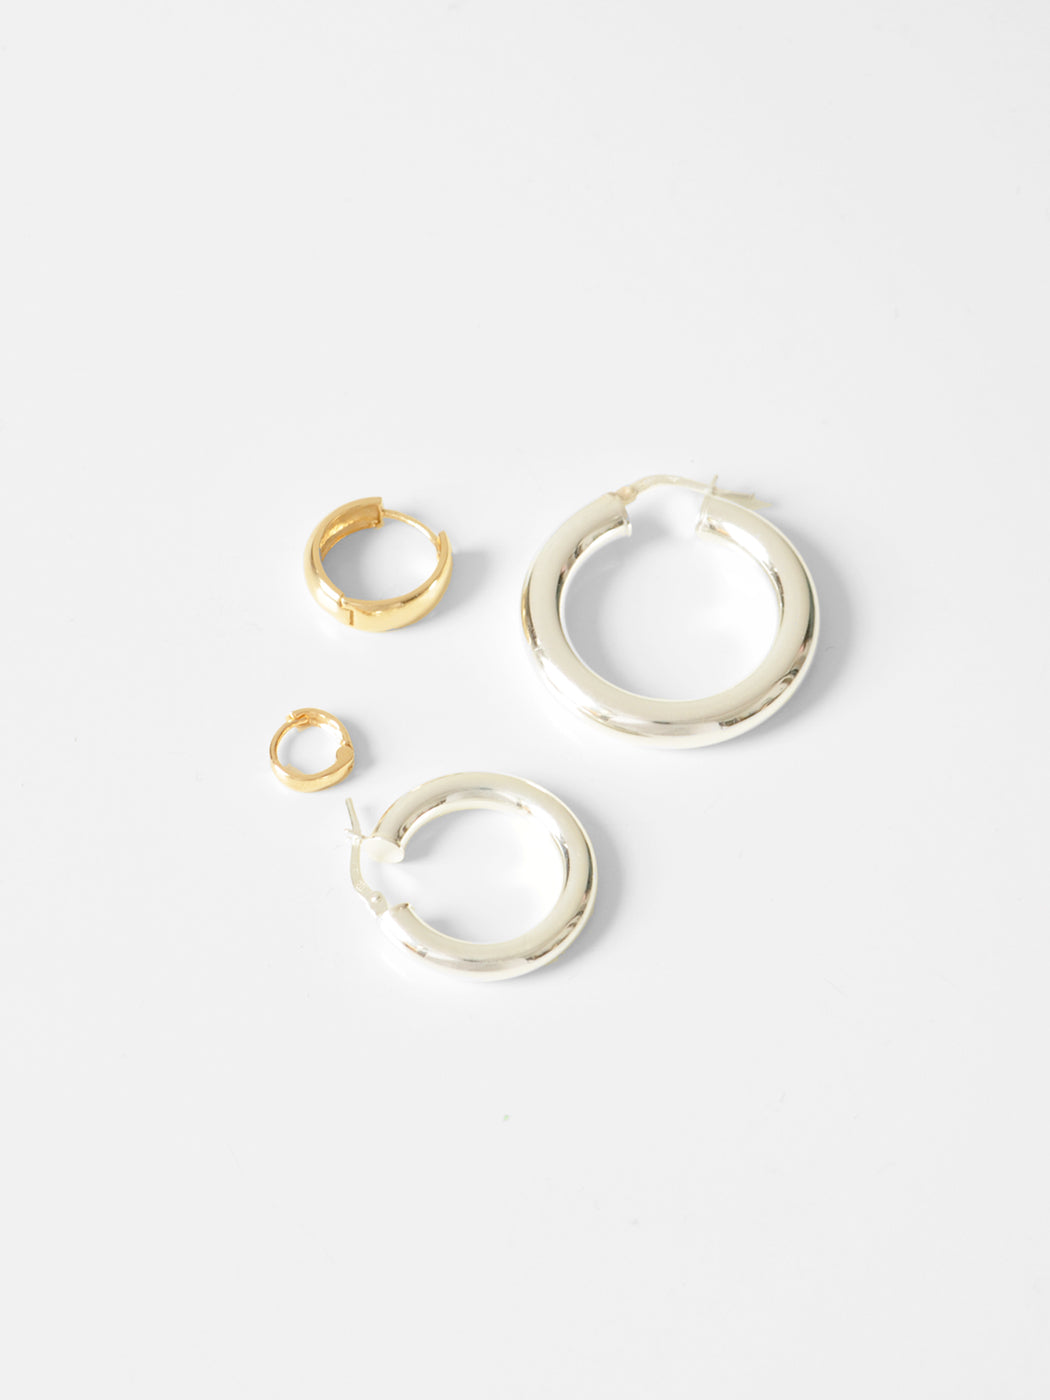 Gerald Tube Hoops / 32mm / Sterling Silver